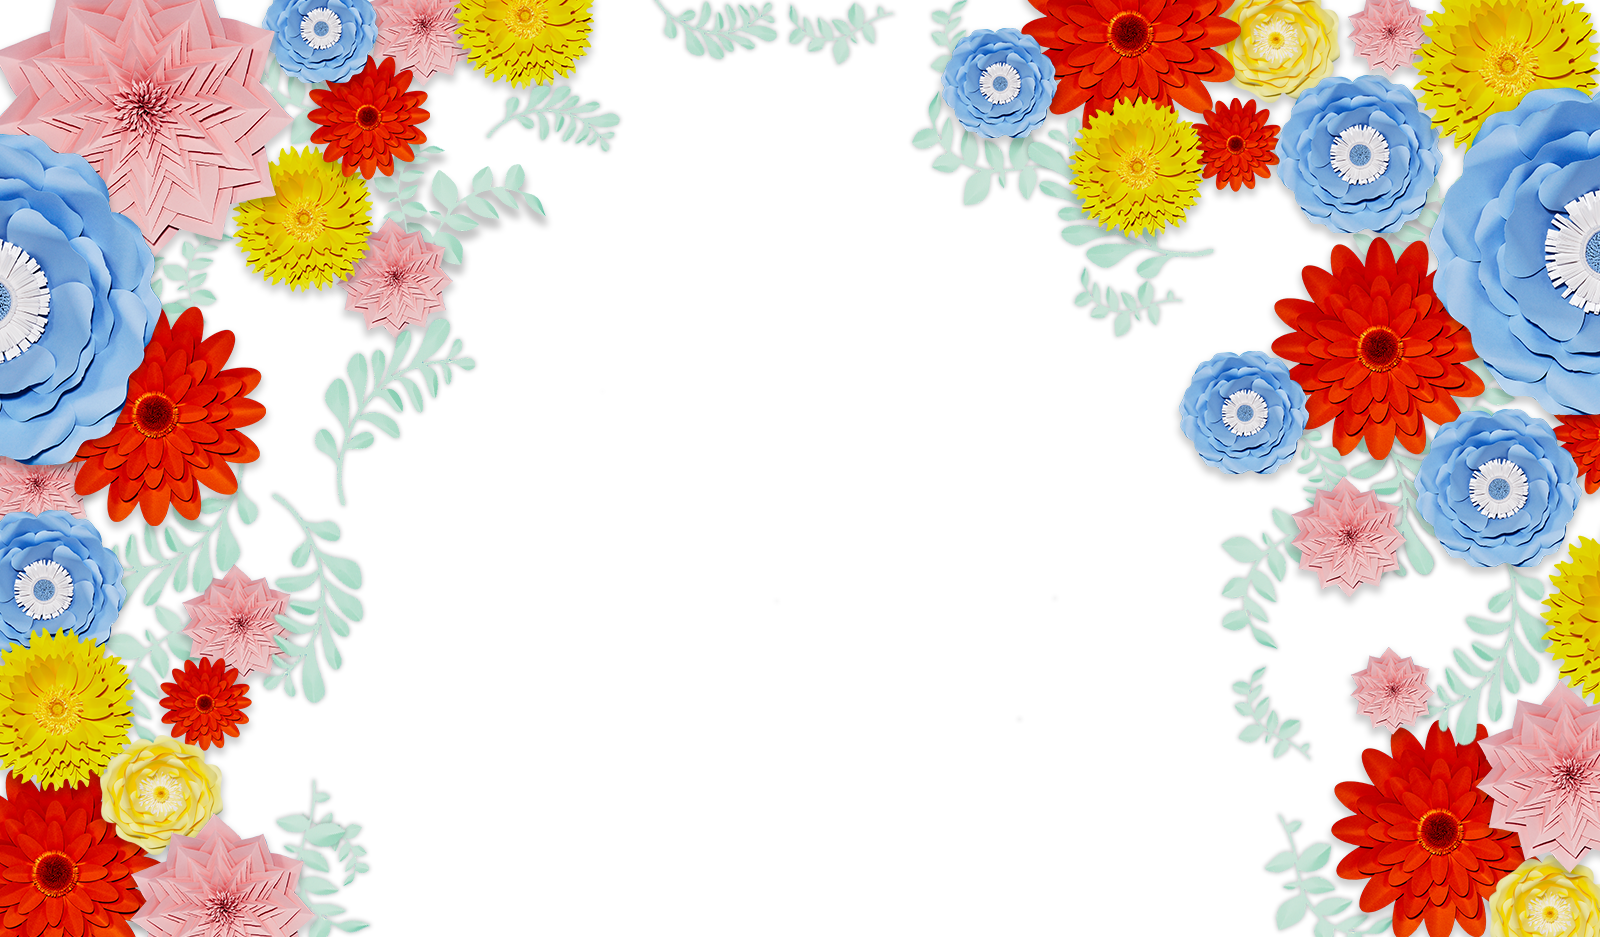 Flowere picture graphic freeuse download Southport Flower Show | UK Garden Show graphic freeuse download